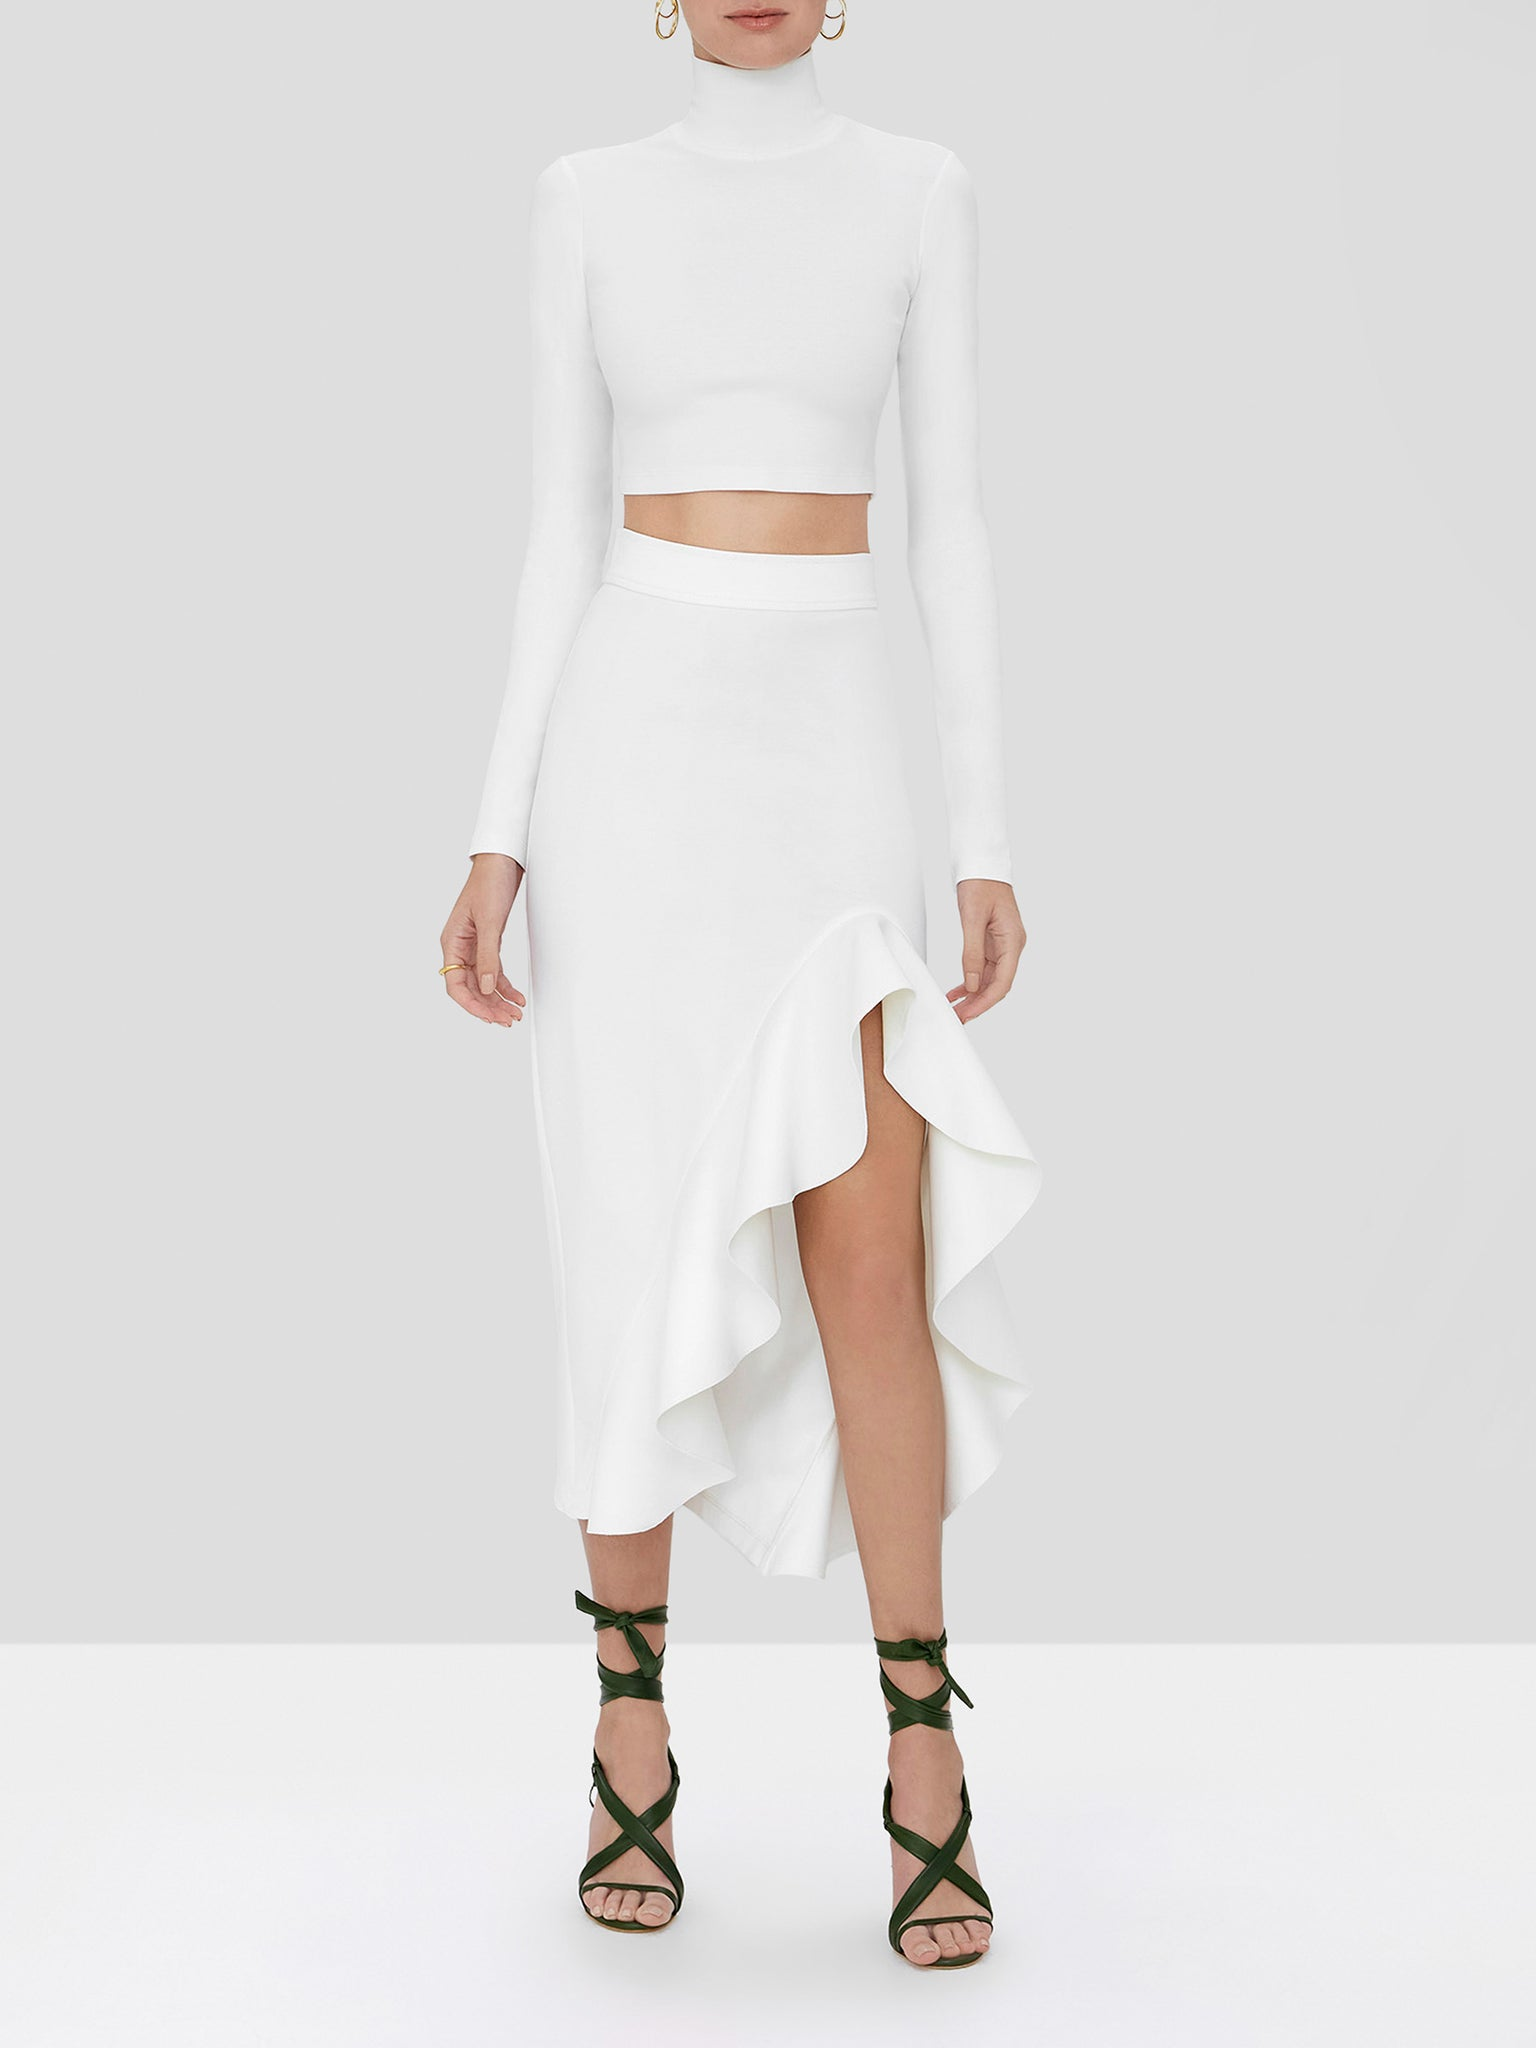 bani skirt in white